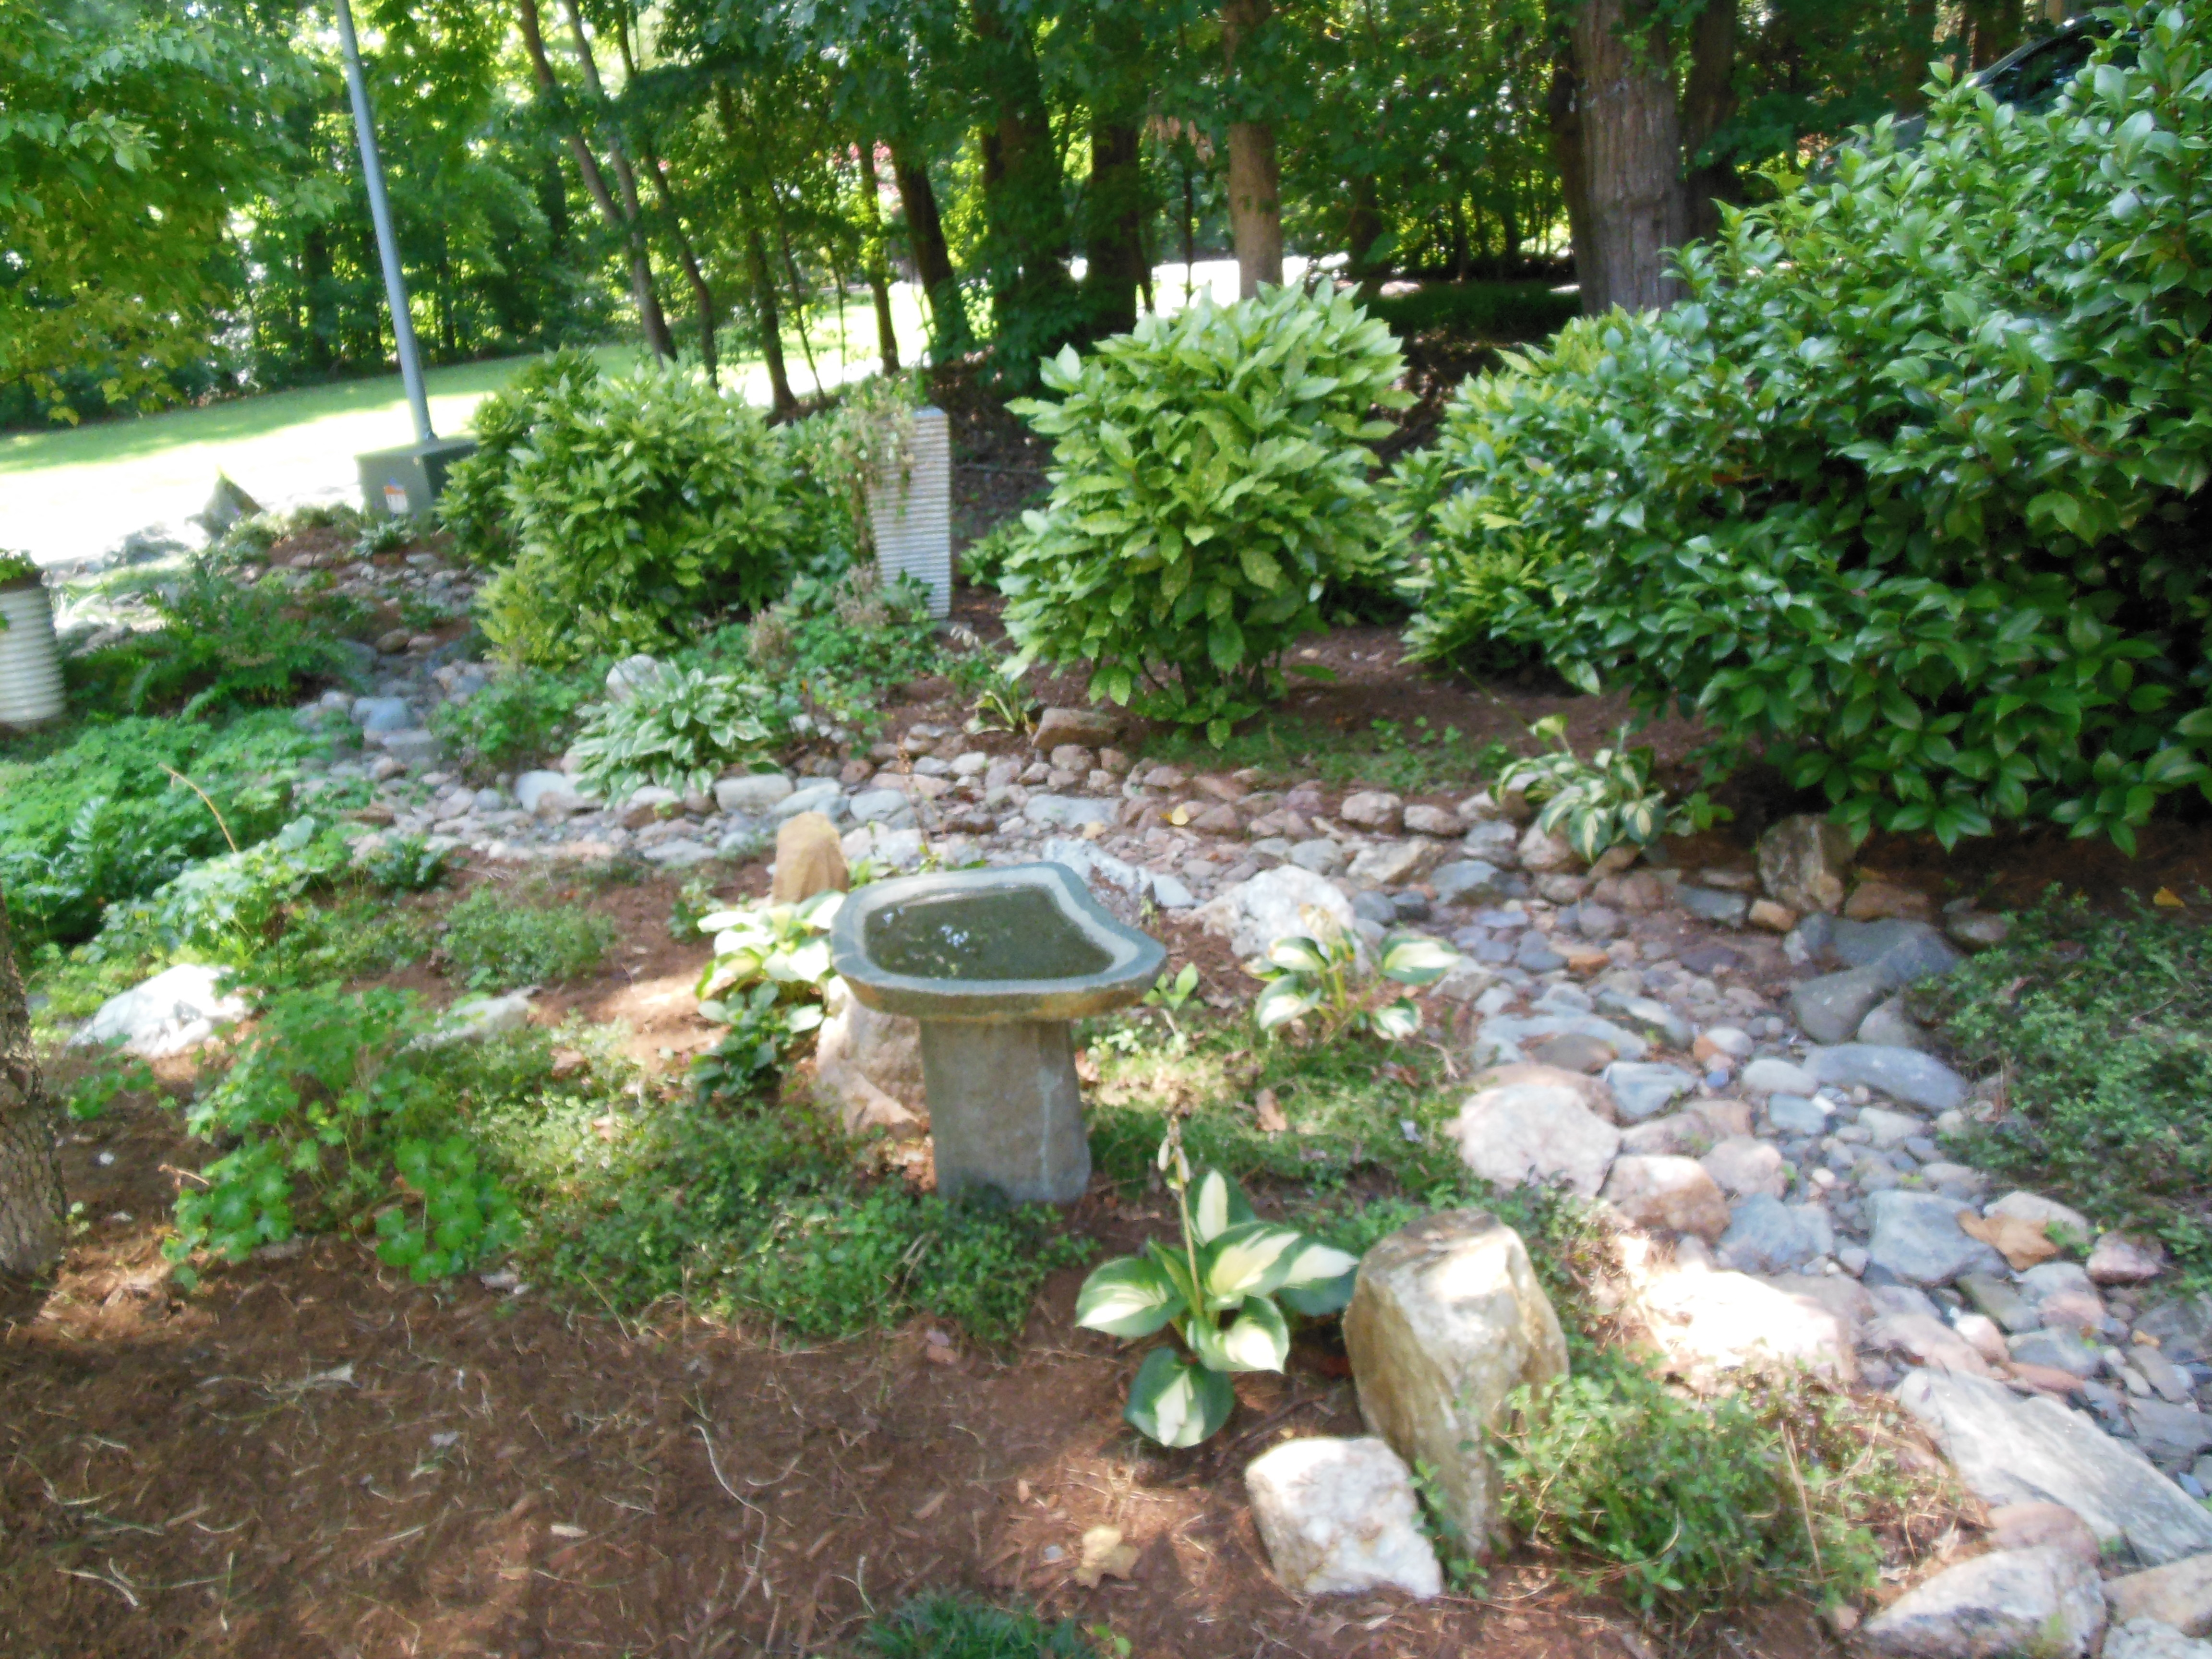 Raleigh Landscaping, Landscaping Raleigh, Dry Creek Bed, Raleigh Landscape, Hardscape